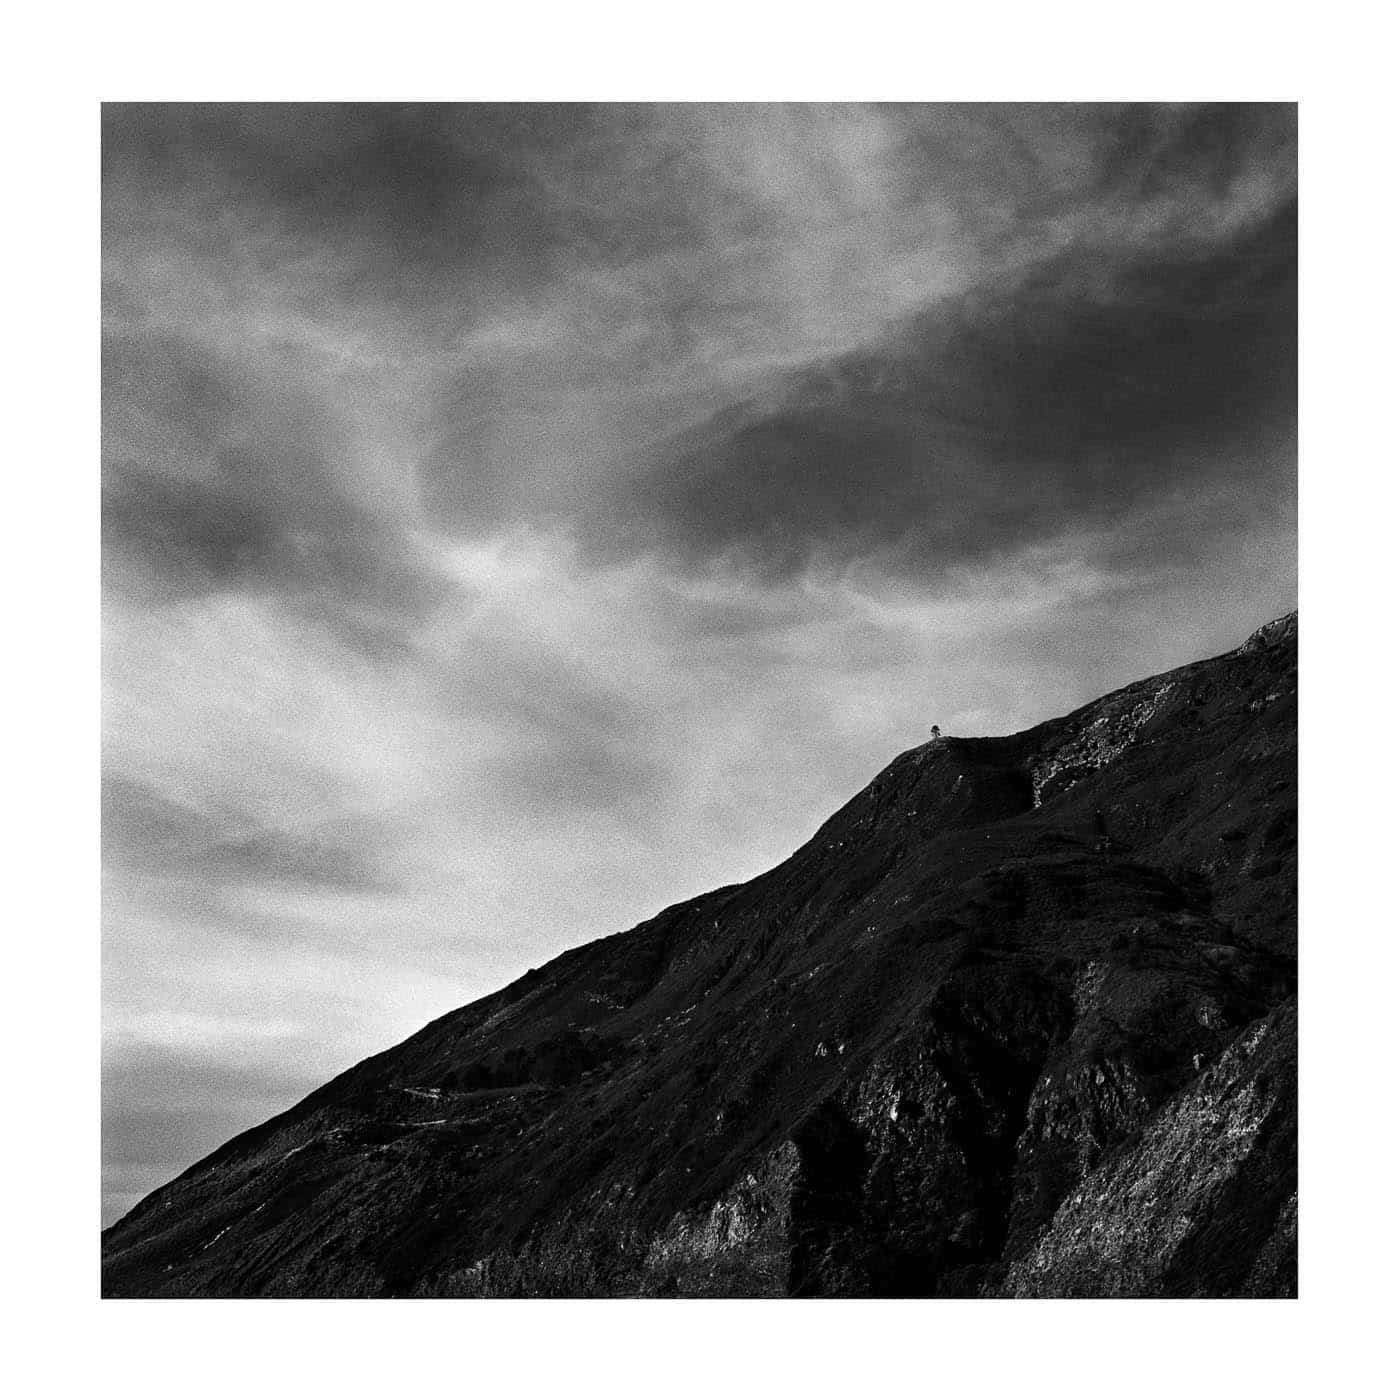 Lone tree in Big Sur along Highway 1 shot on Ilford FP4